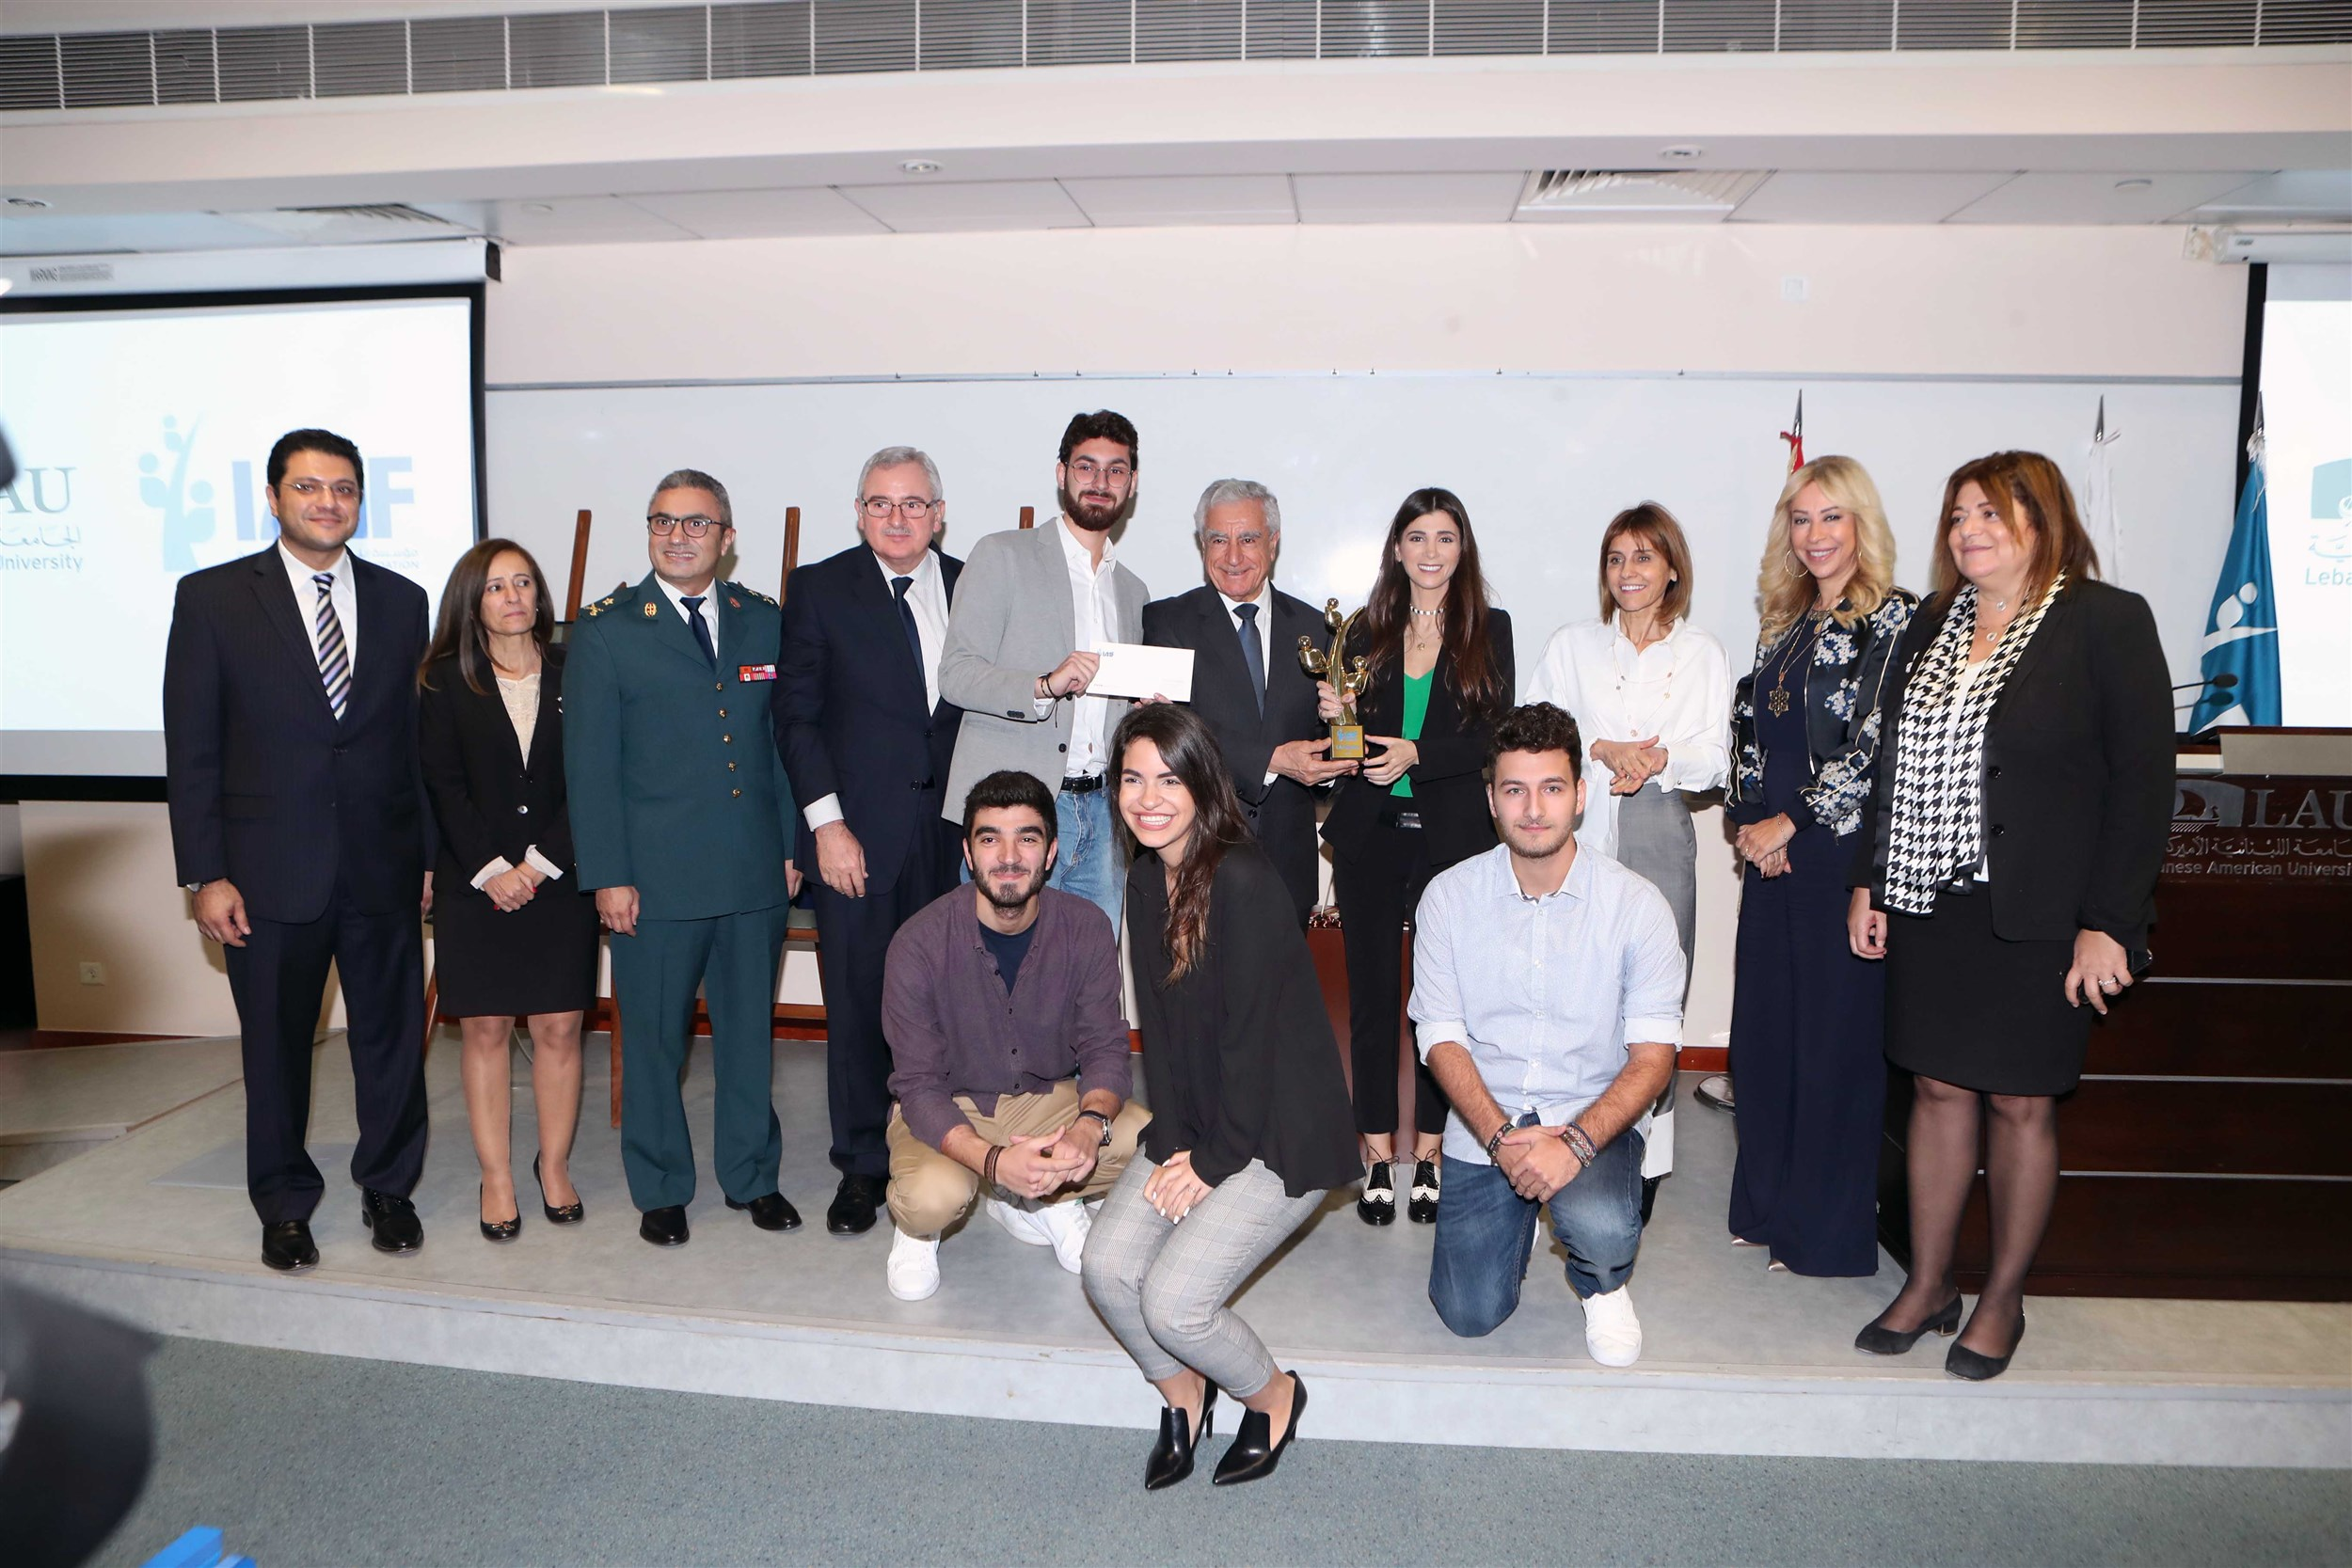 """the winners of the byblos campus iaaf awards with the jury and esteemed guests after receiving their monetary prize to fund their new application titled """"findmydoc"""" that enables patients to find physicians via the application and rate them."""